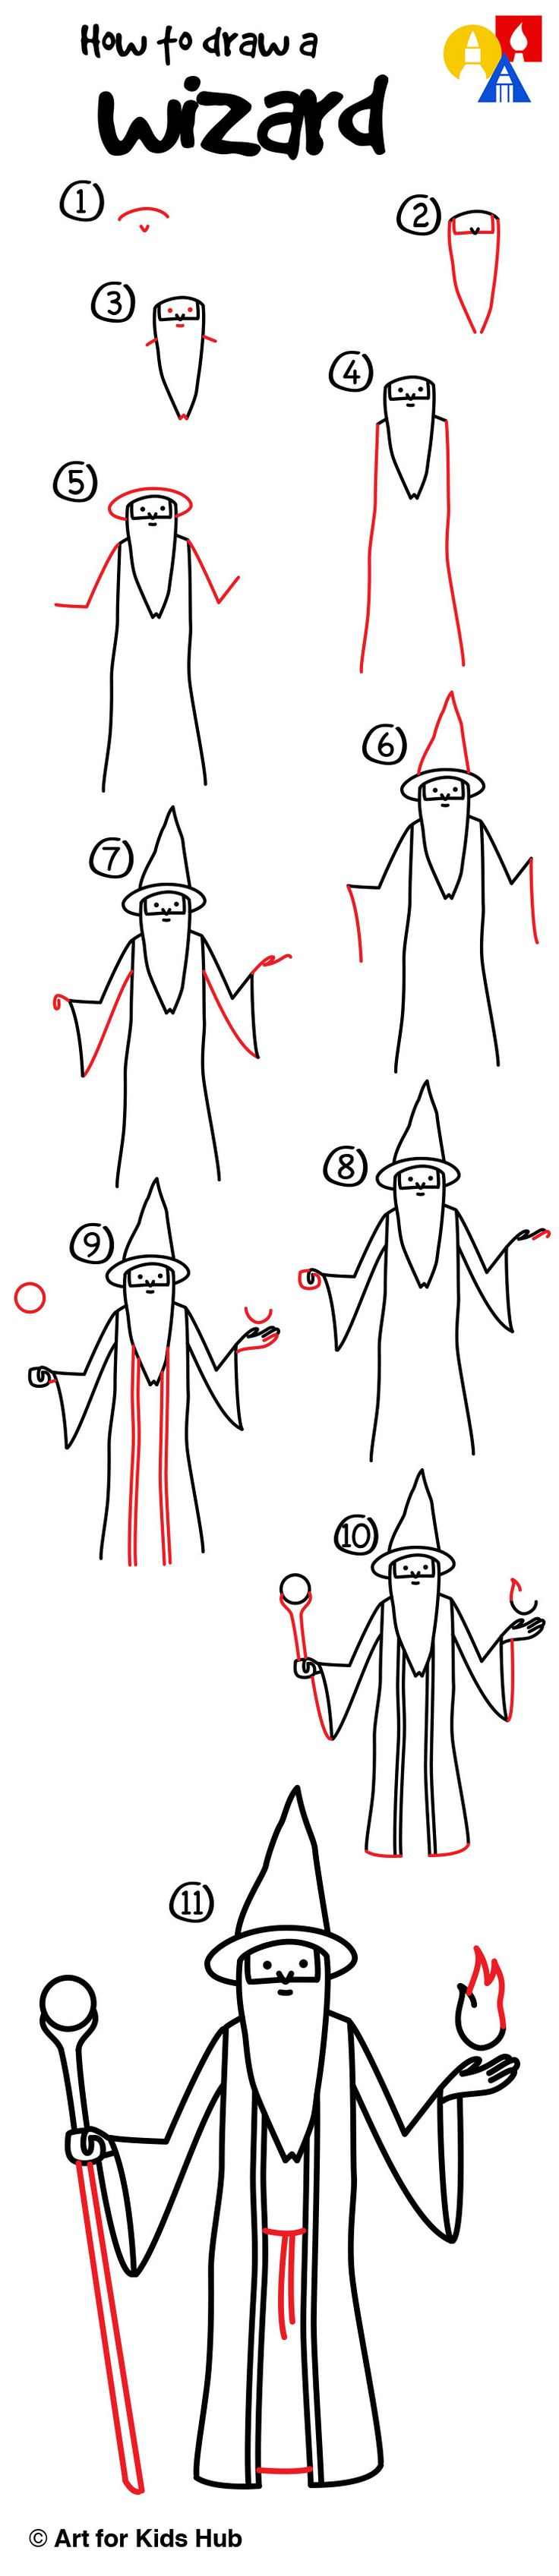 Uncategorized How To Draw Things For Kids best 25 learning to draw for kids ideas on pinterest how a wizard art hub